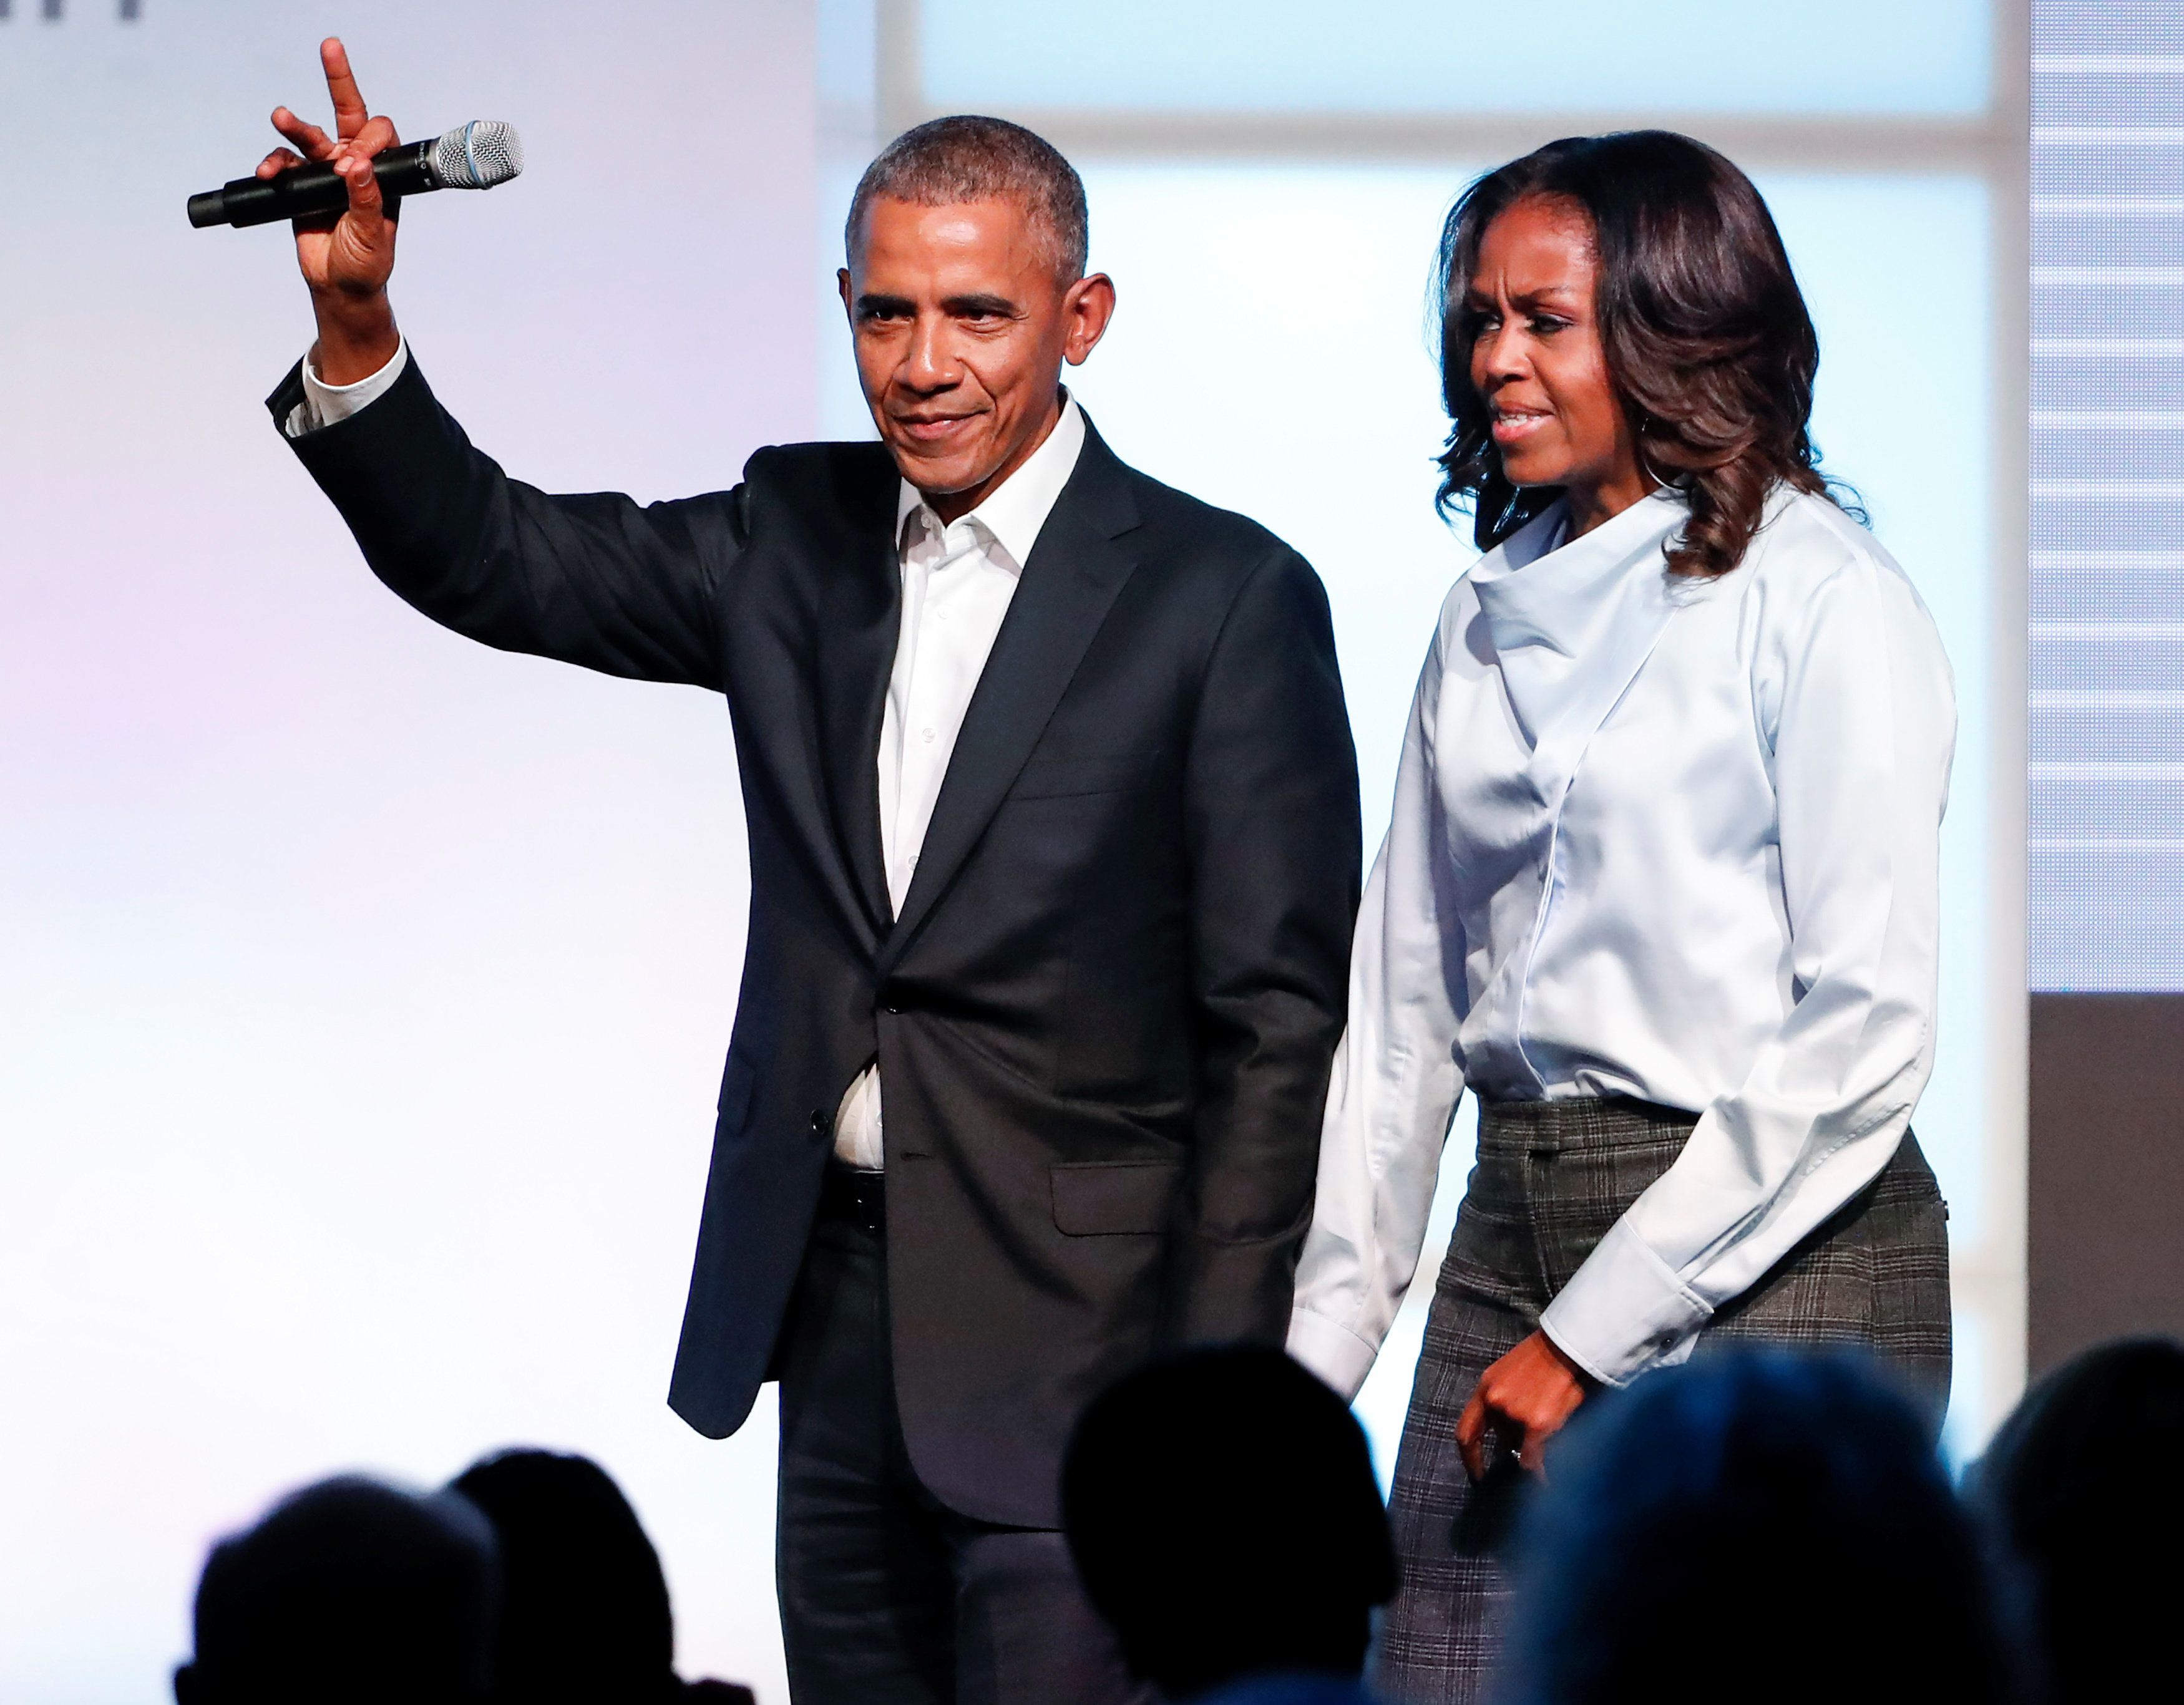 A Year After He Left Office, Barack Obama's Ratings Are Up